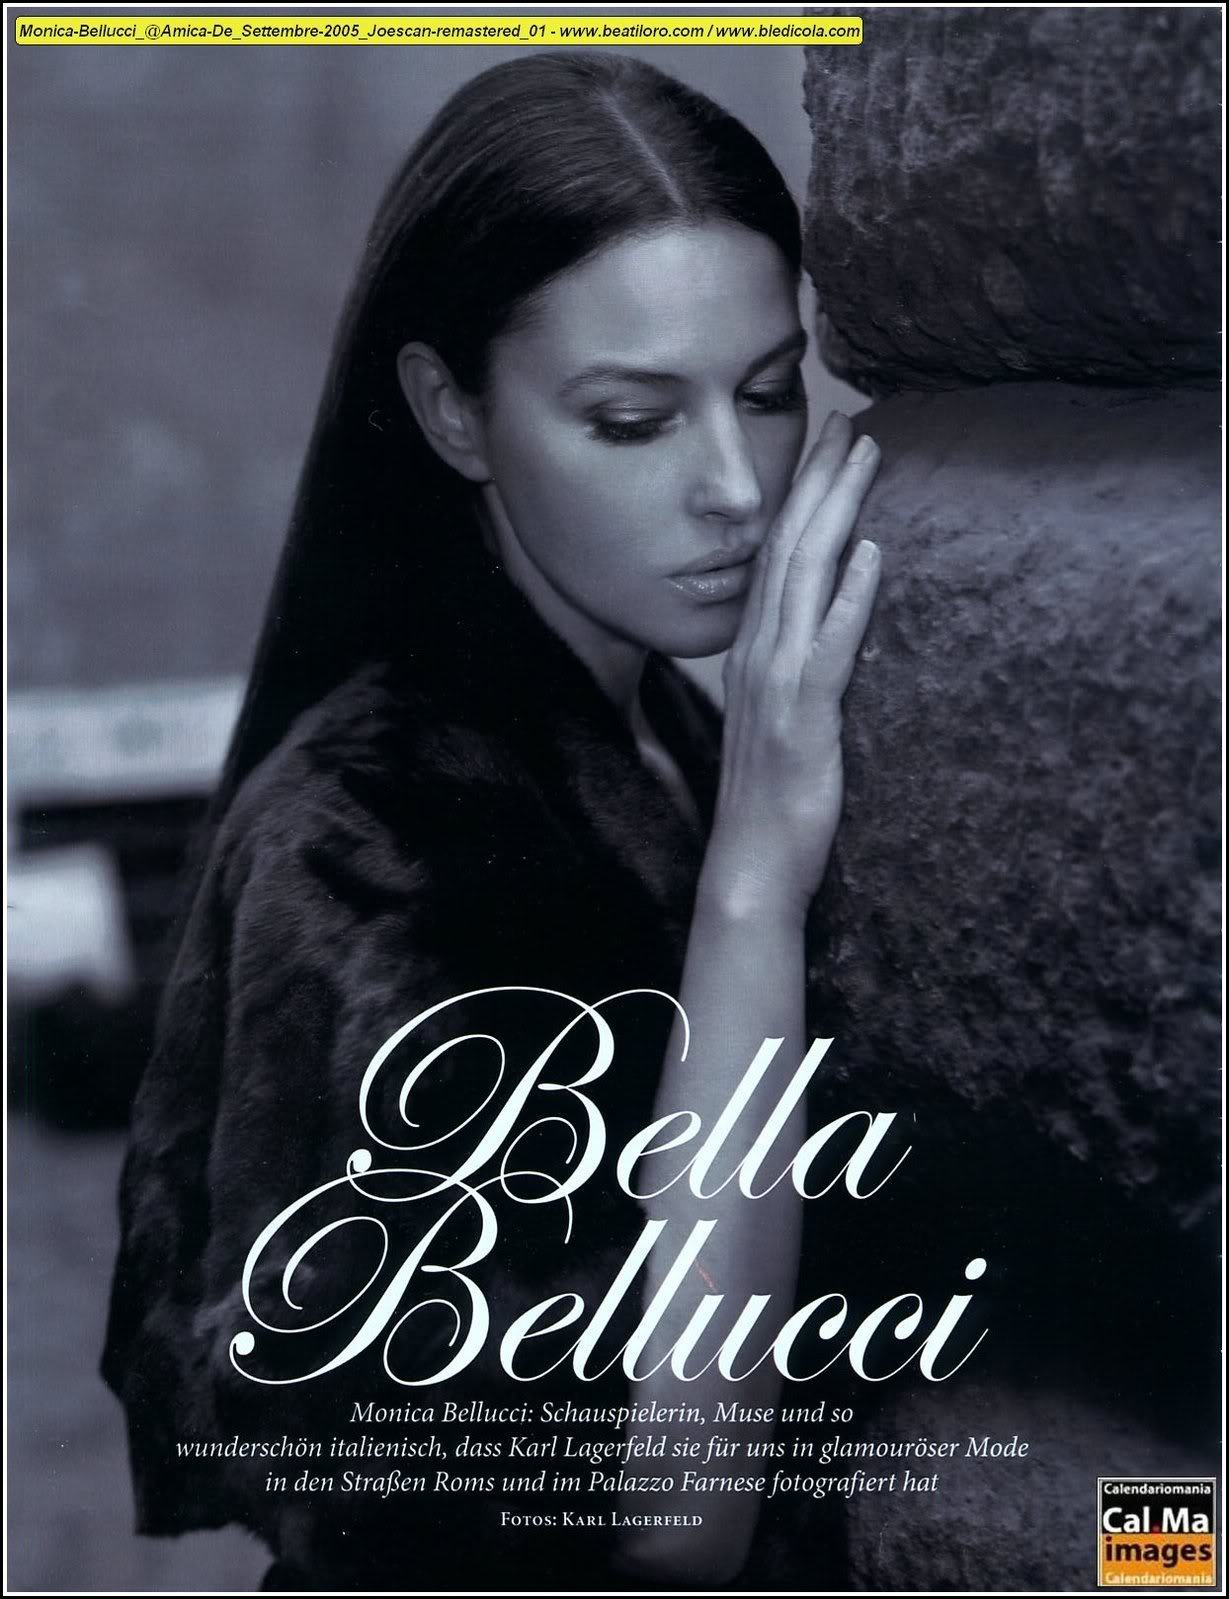 Monica Belluci - Amica Magazine Sep 05 Scans - Sexy Actress Pictures | Hot Actress Pictures